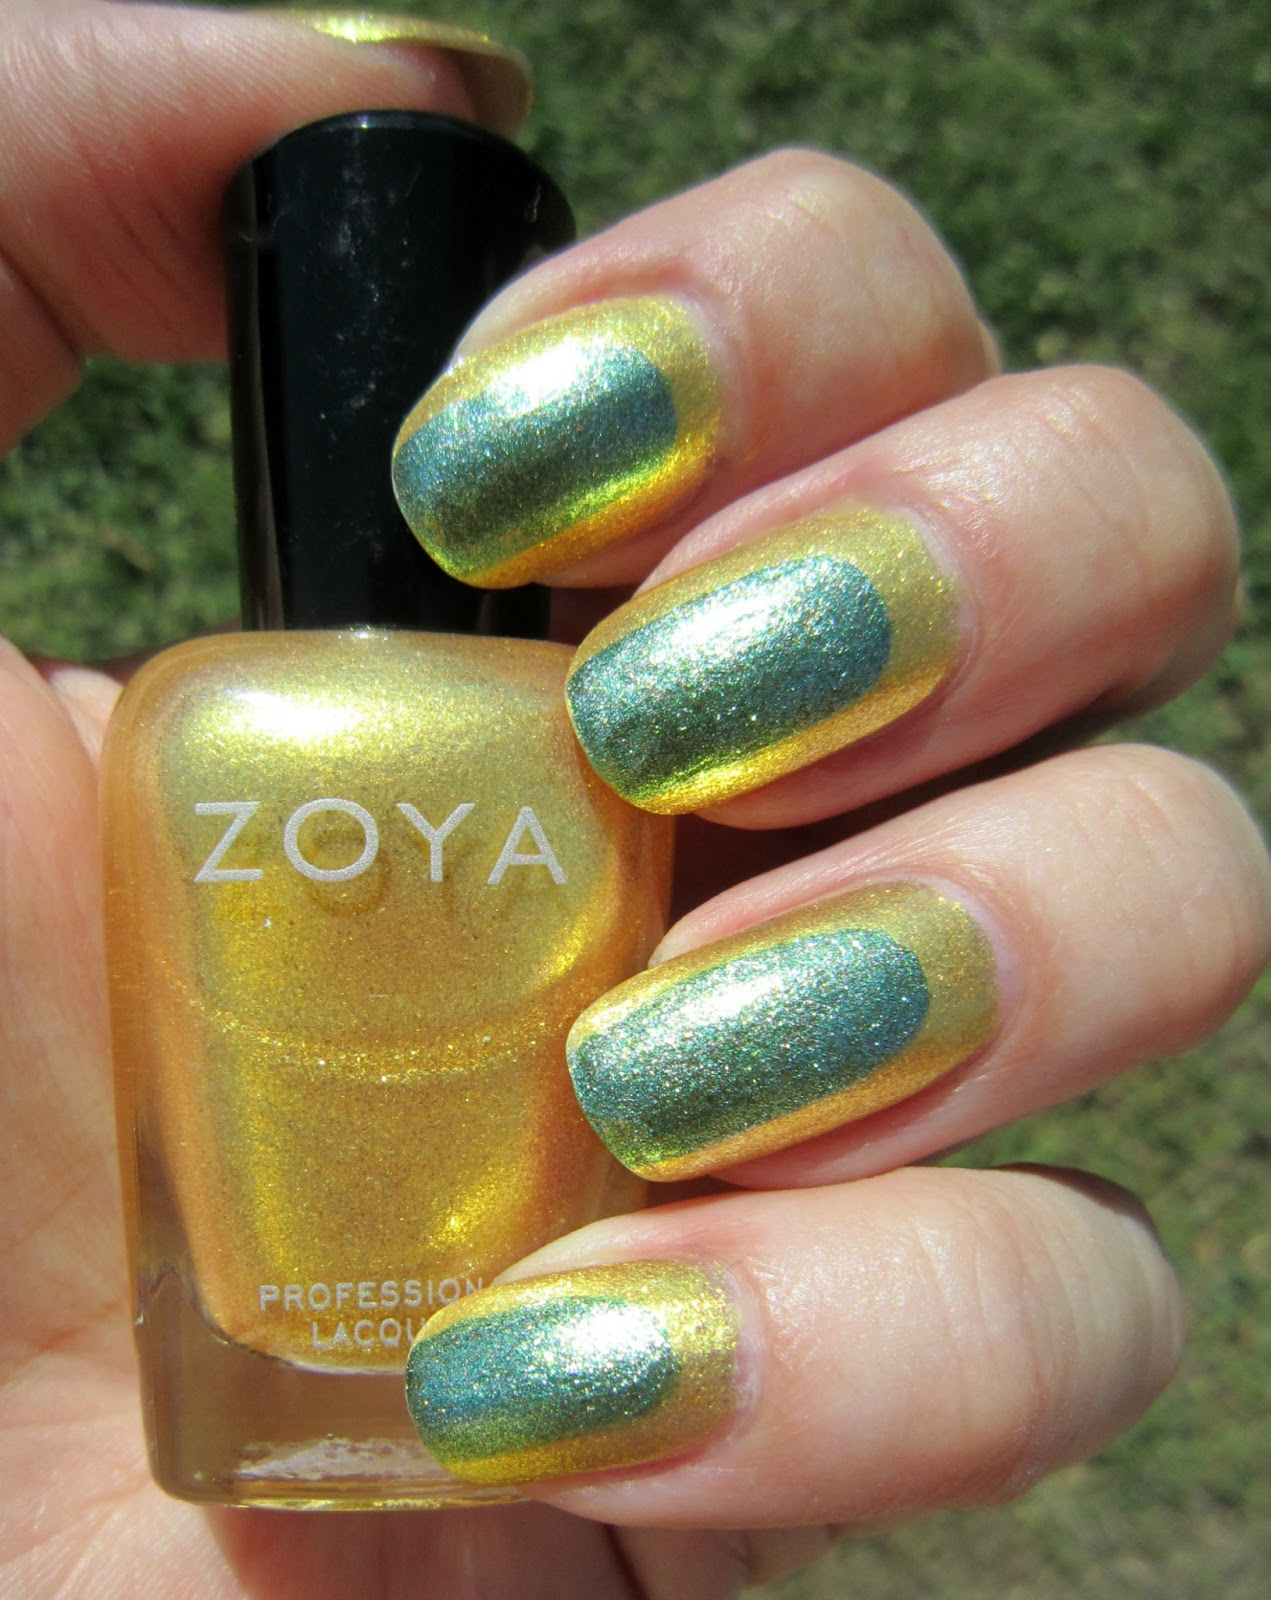 Concrete and nail polish lemon lime ruffian nails with zoya kerry lemon lime ruffian nails with zoya kerry zoya rikki prinsesfo Images